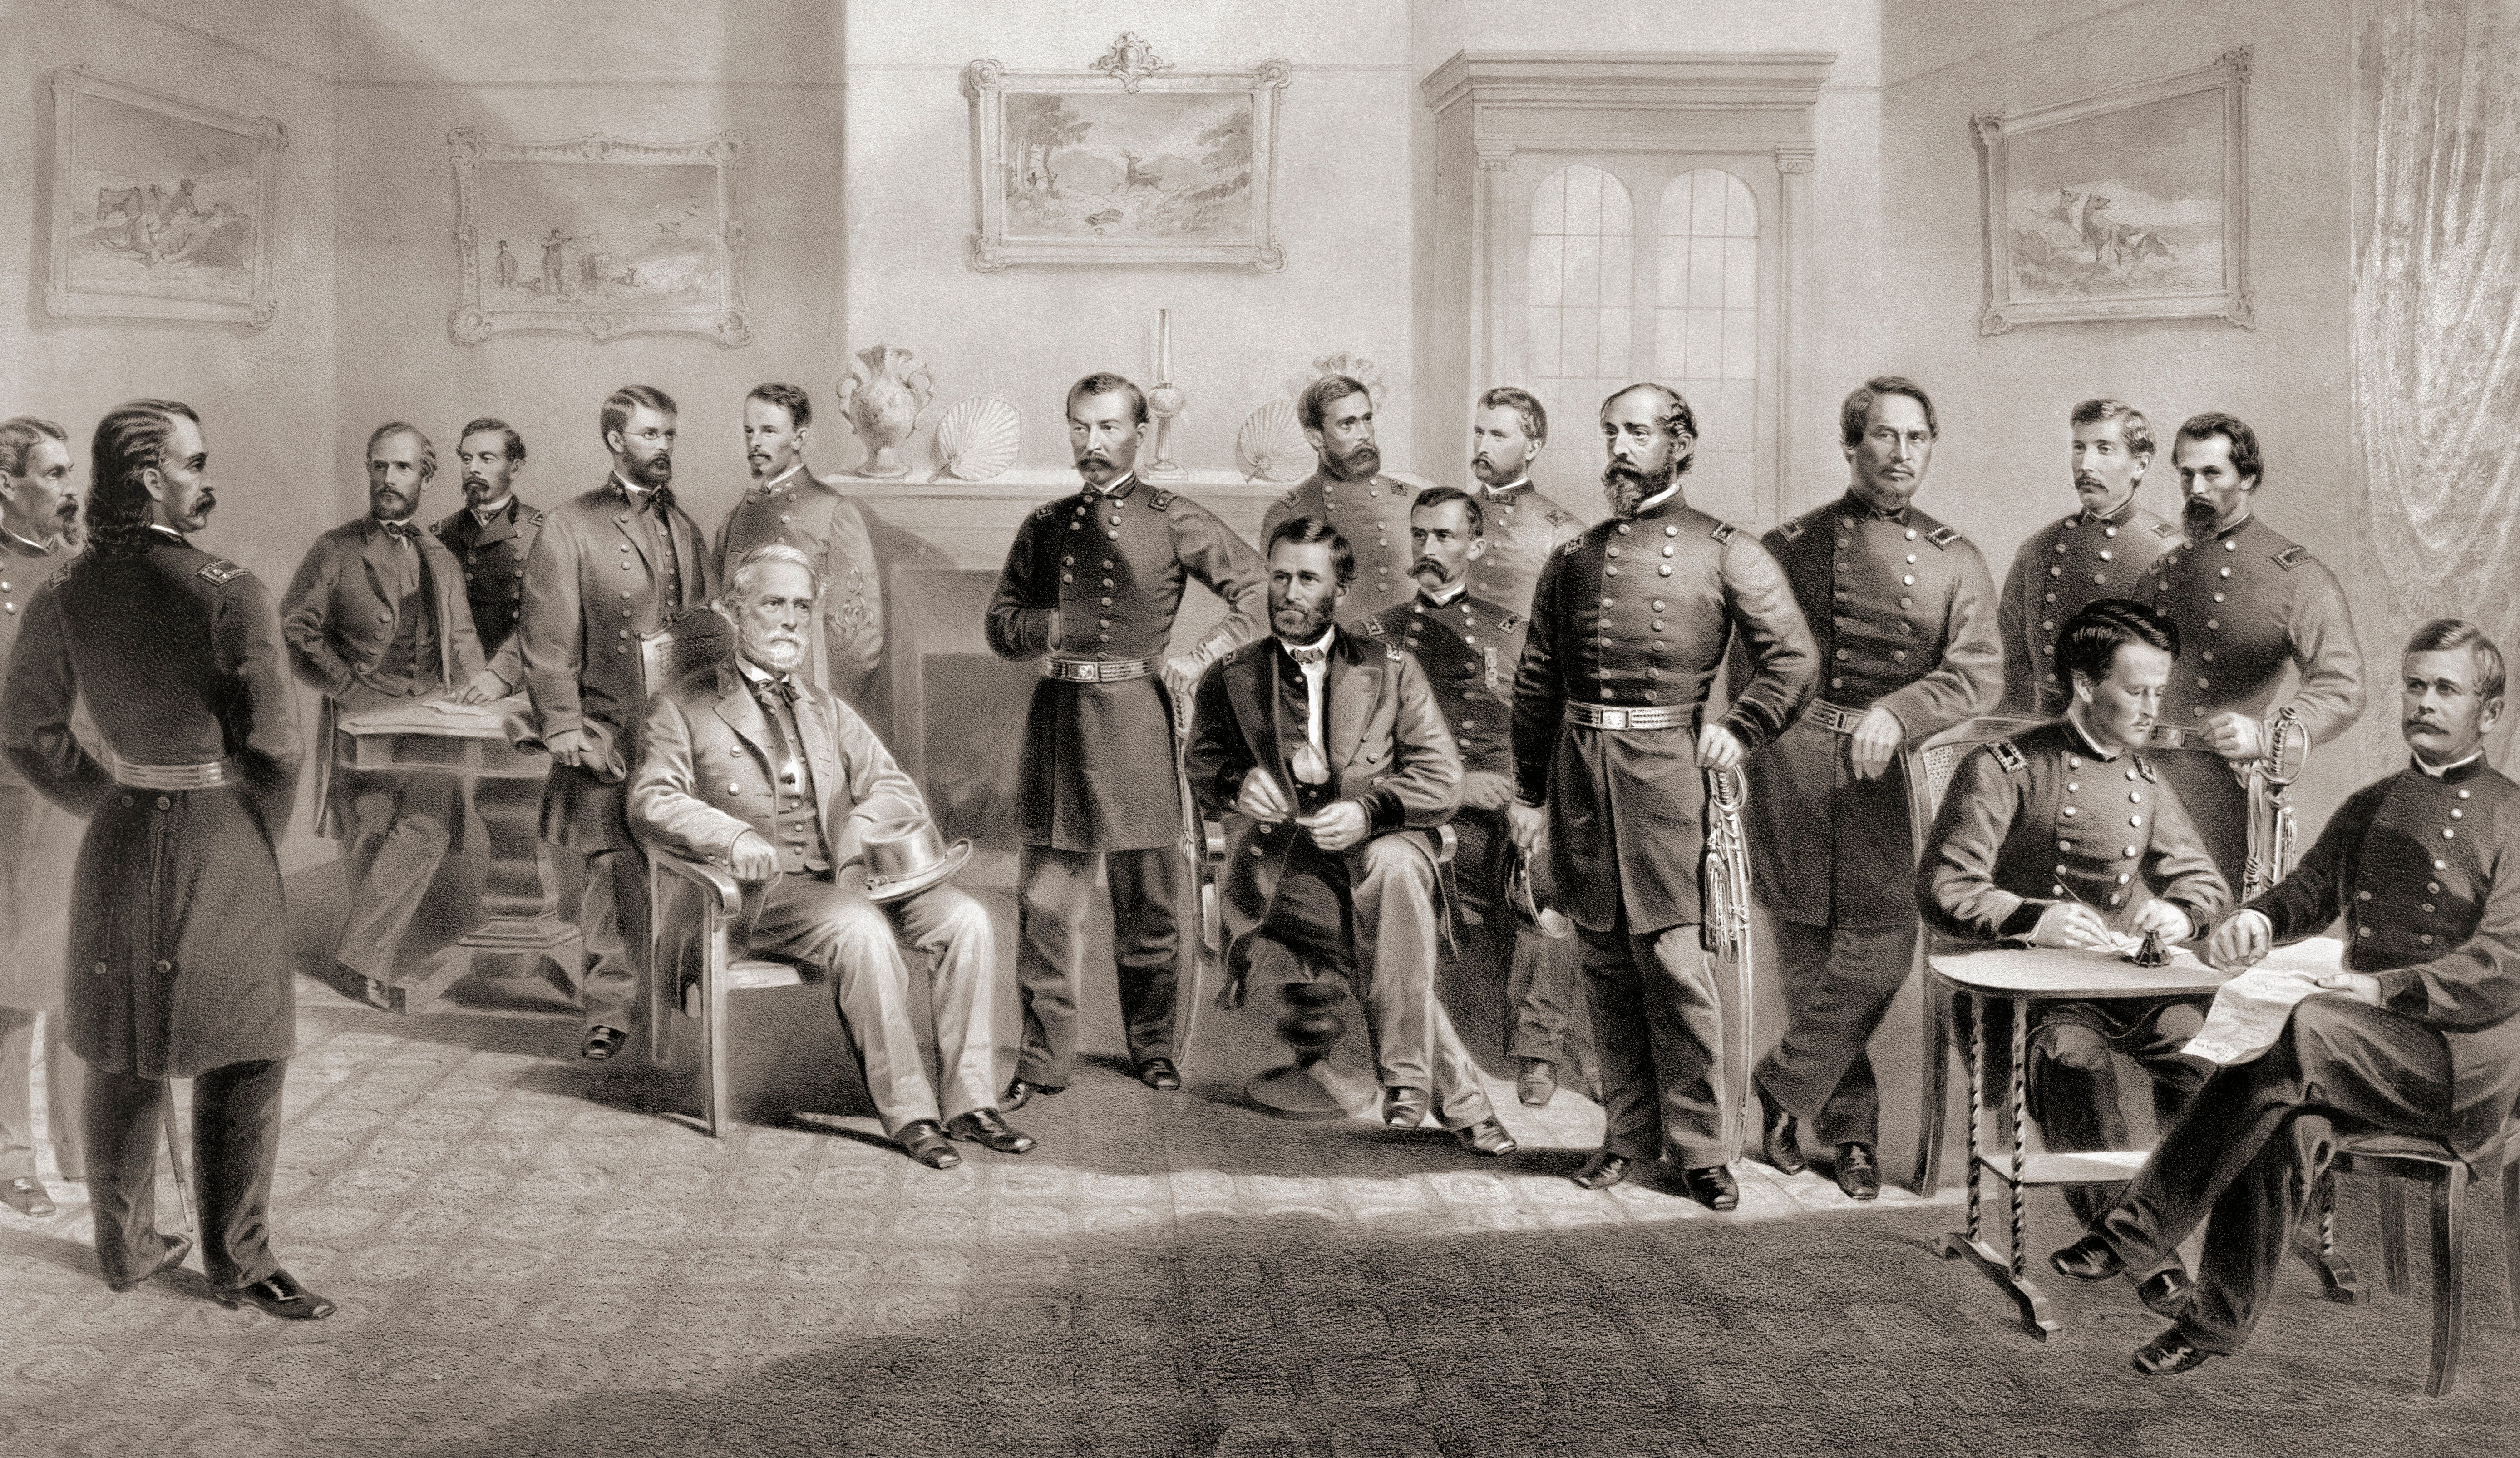 General Ulysses S. Grant (seated centre right) and General Robert E. Lee (seated centre left) with their respective staff at the Appomattox Courthouse, Virginia where General Lee surrendered the Army of North Virginia and thus ended the American Civi